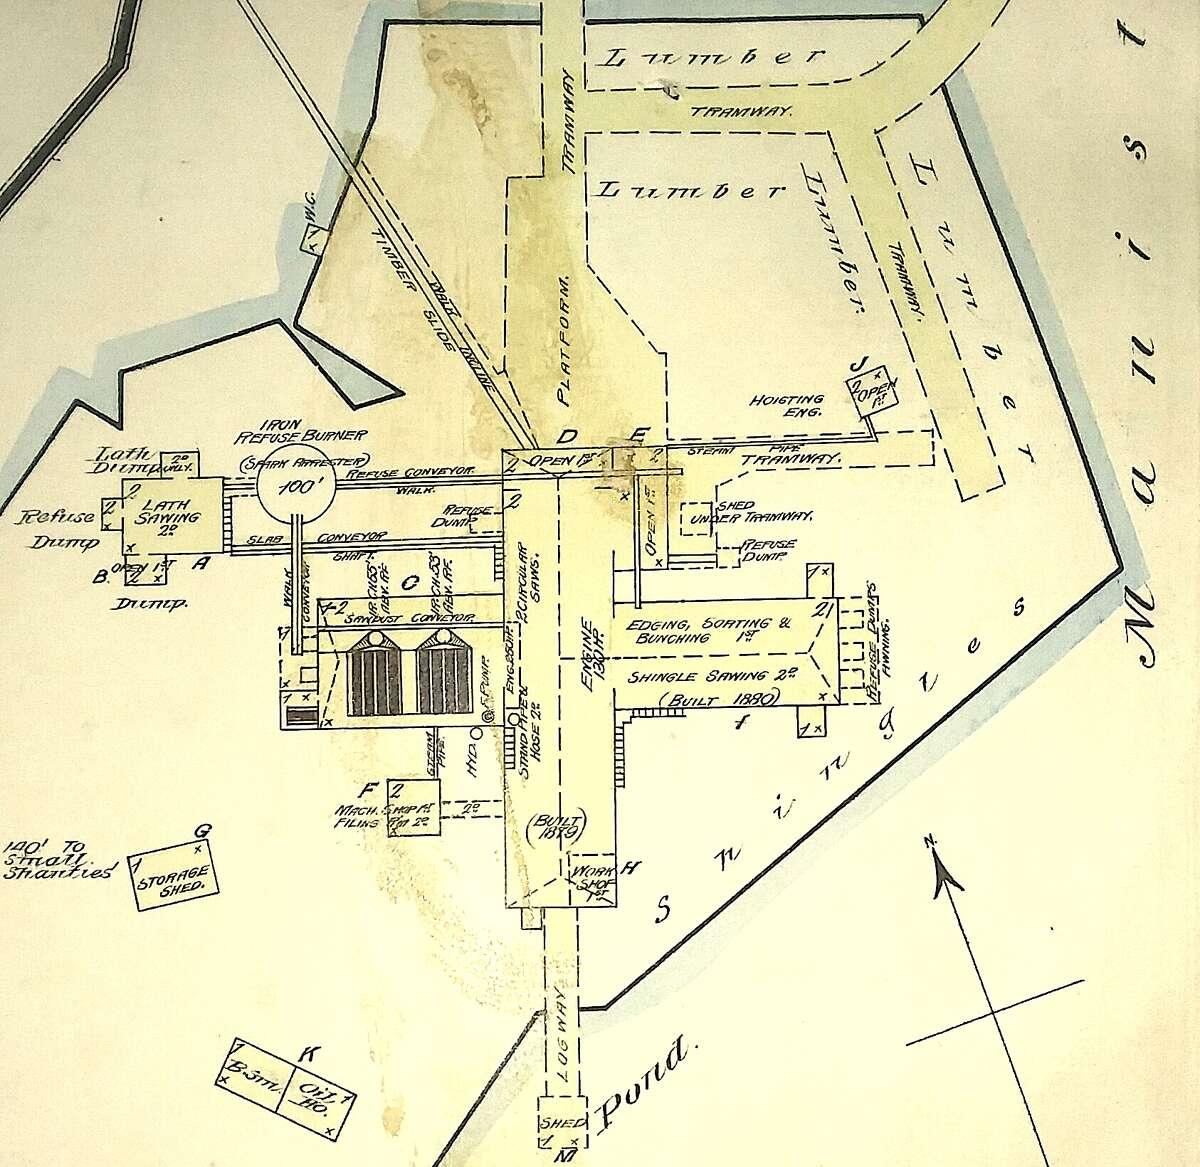 A diagram, taken from the 1883 Sanborn Insurnace Map, of the sawmill of Davies, Blacker & Co. which was formerly located in the eastern section of the city limits off of Vine Street along Manistee Lake.